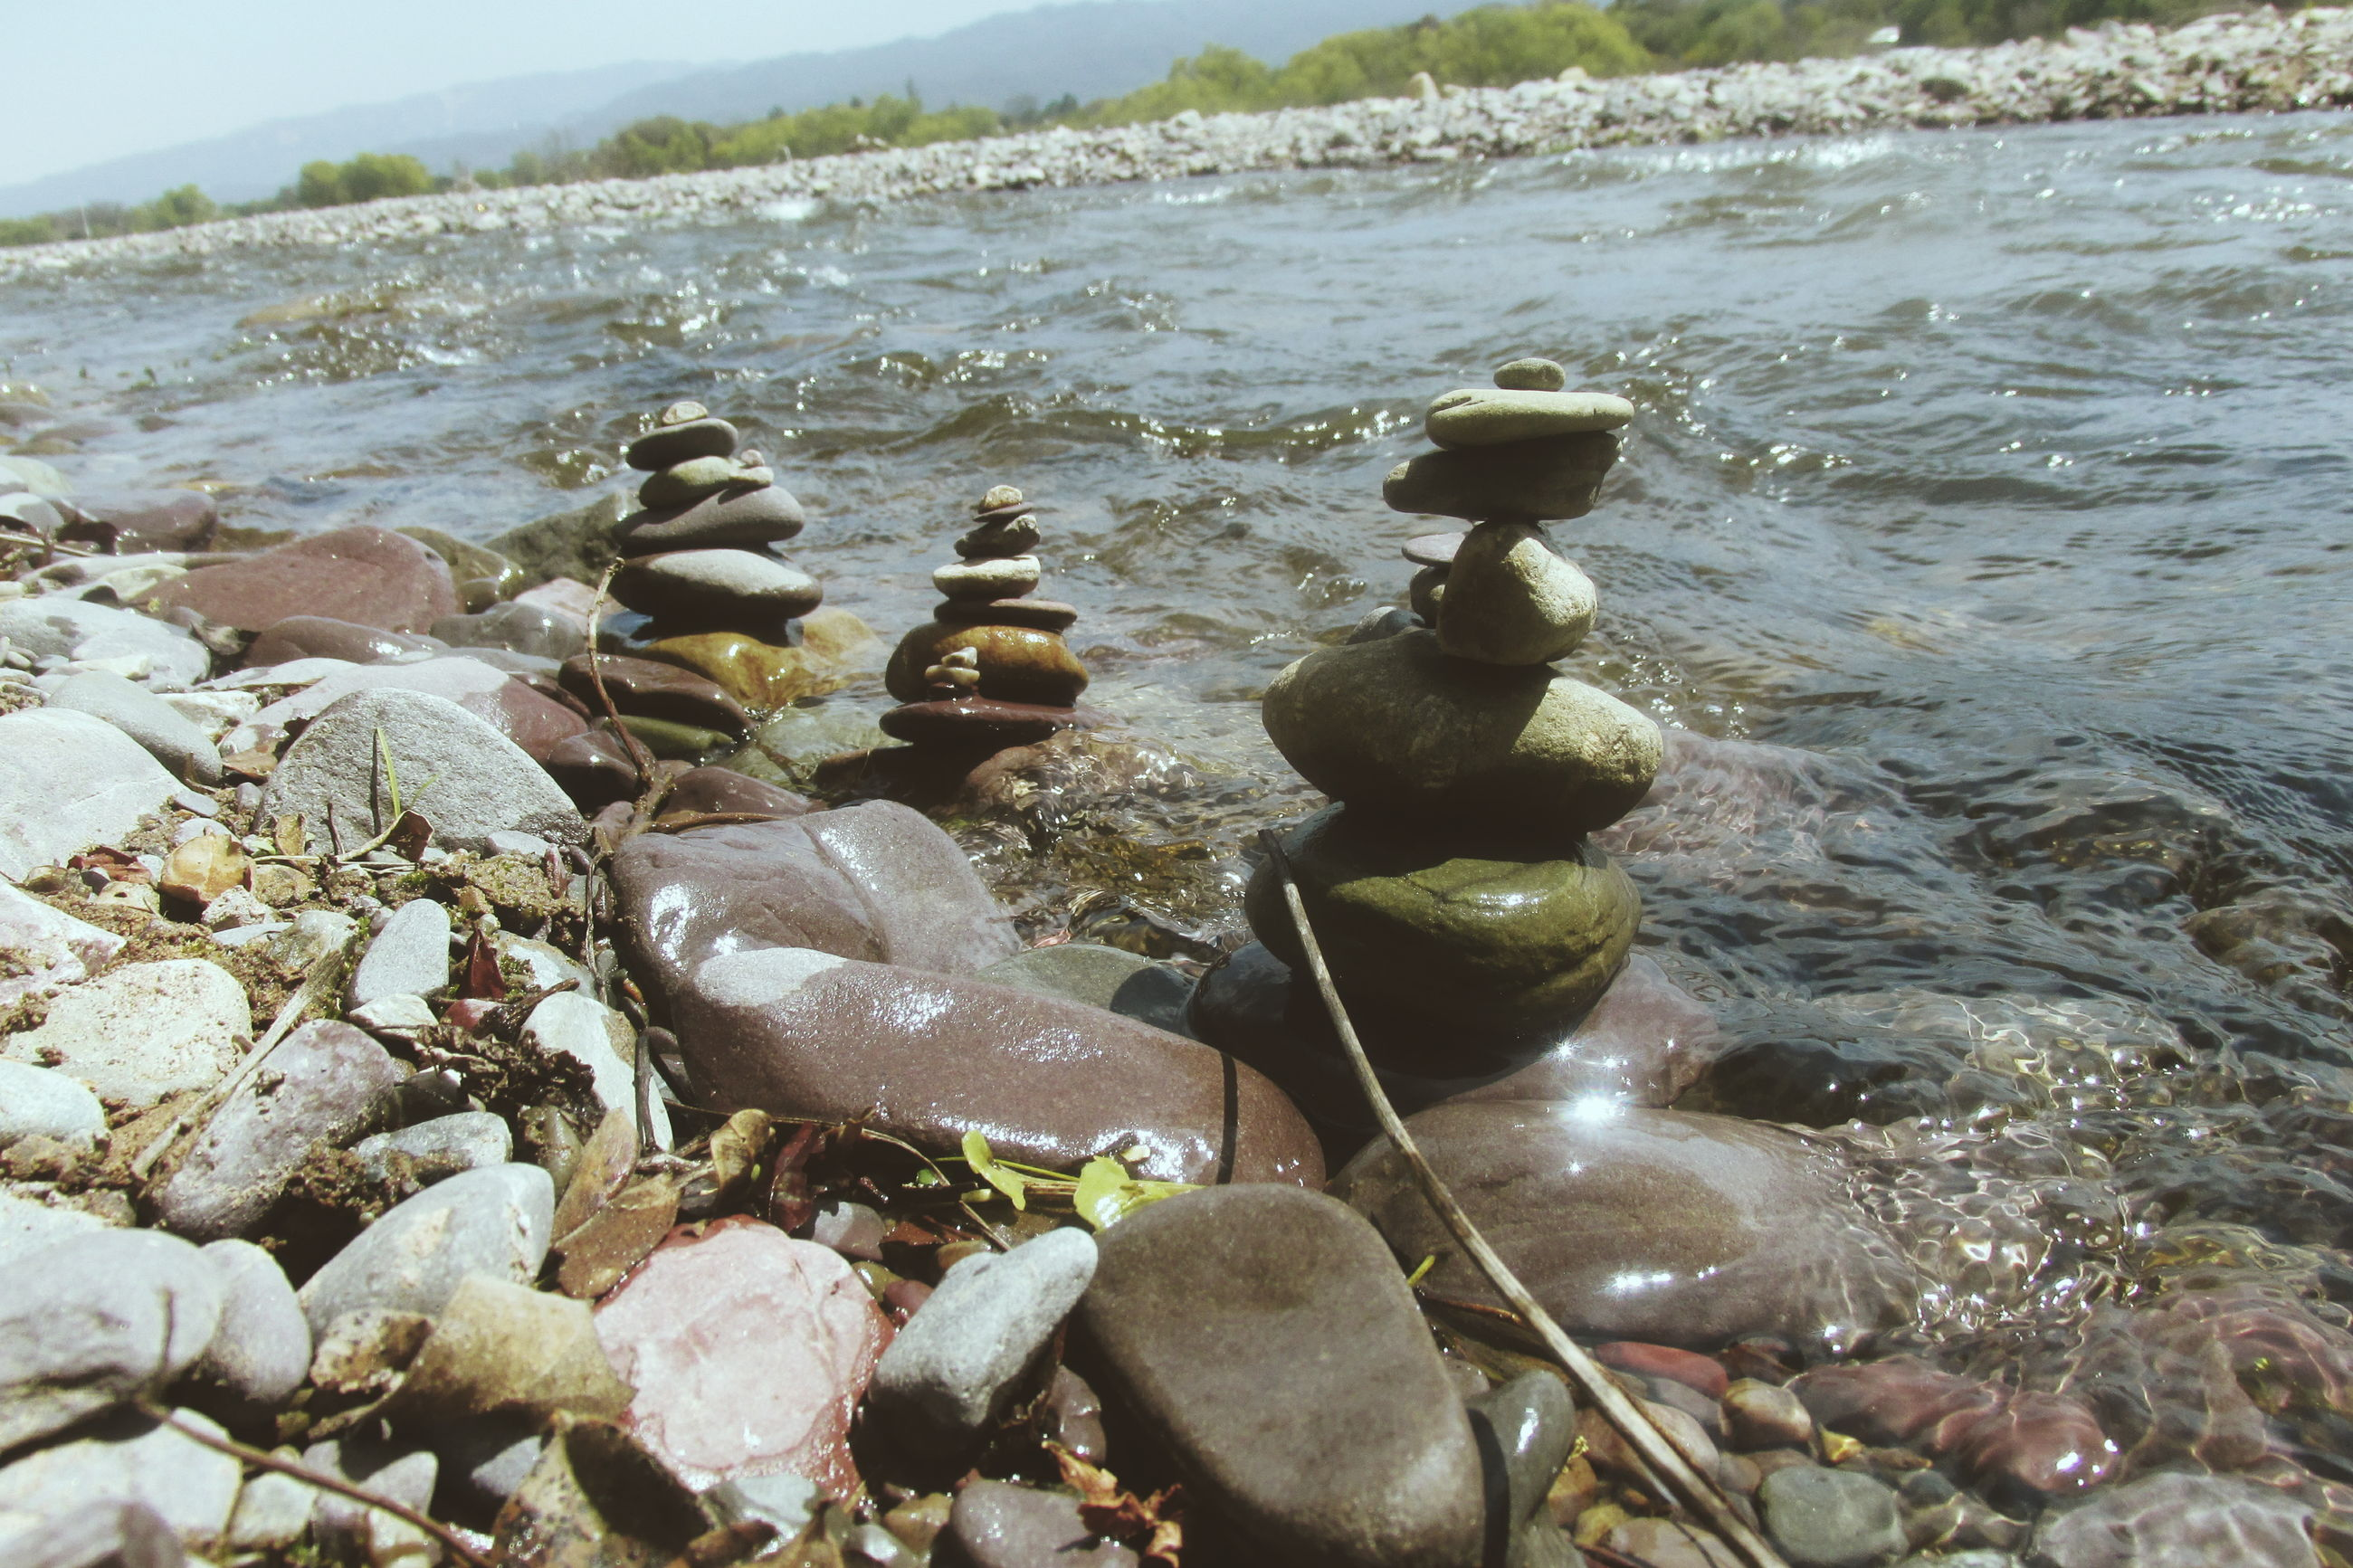 water, rock - object, tranquility, stone - object, nature, tranquil scene, stack, pebble, beauty in nature, stone, scenics, abundance, reflection, day, rock, lake, outdoors, no people, large group of objects, idyllic